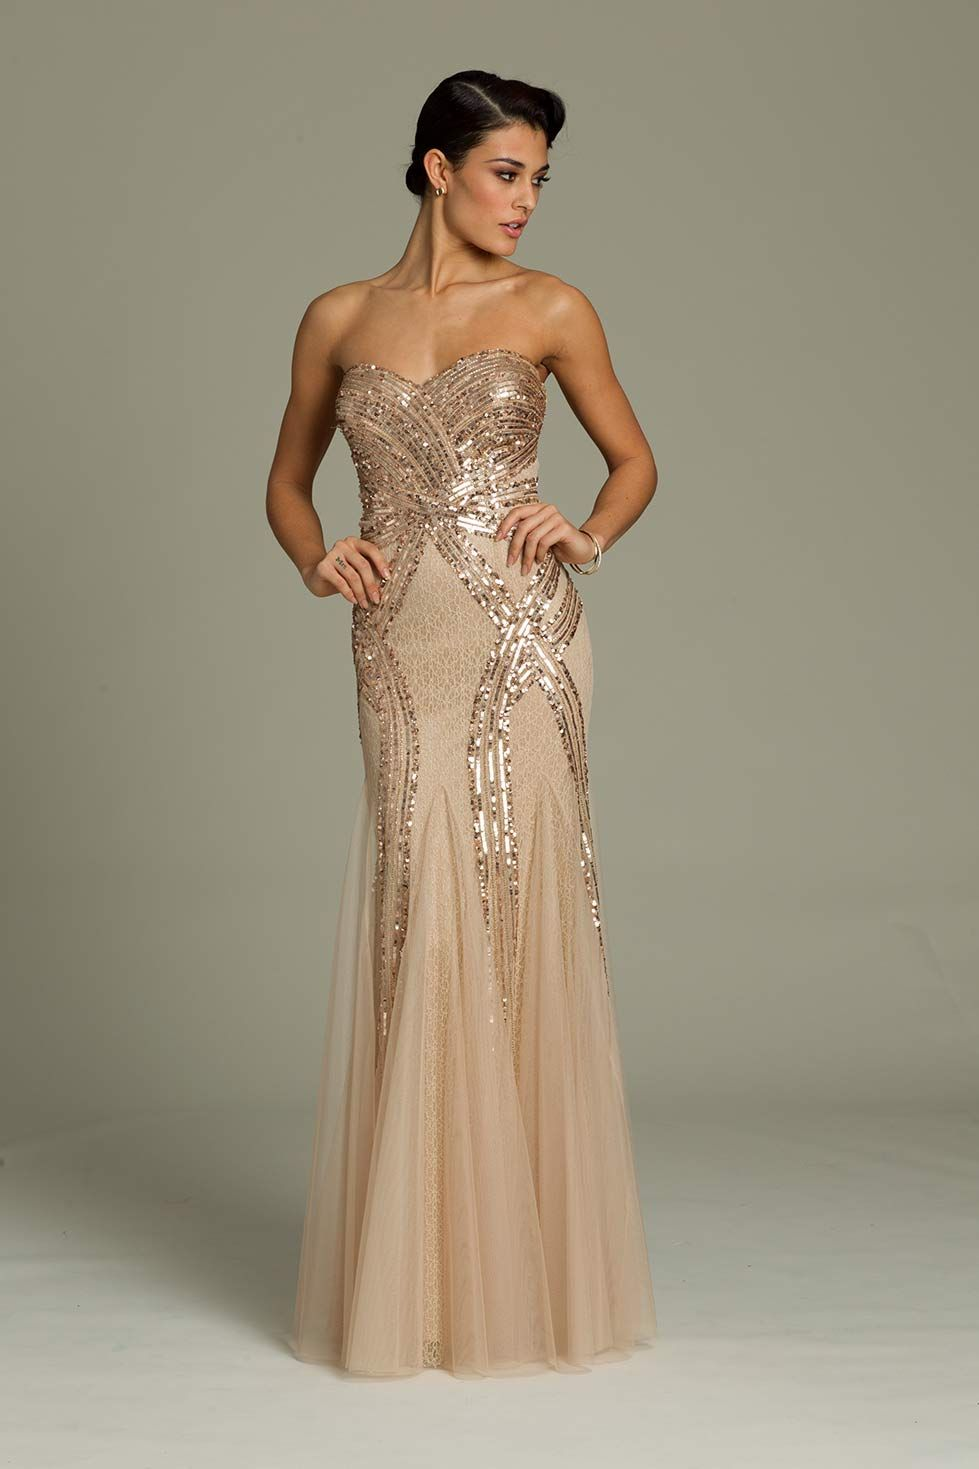 Wedding Jovani dresses with inviting beautiful pictures images